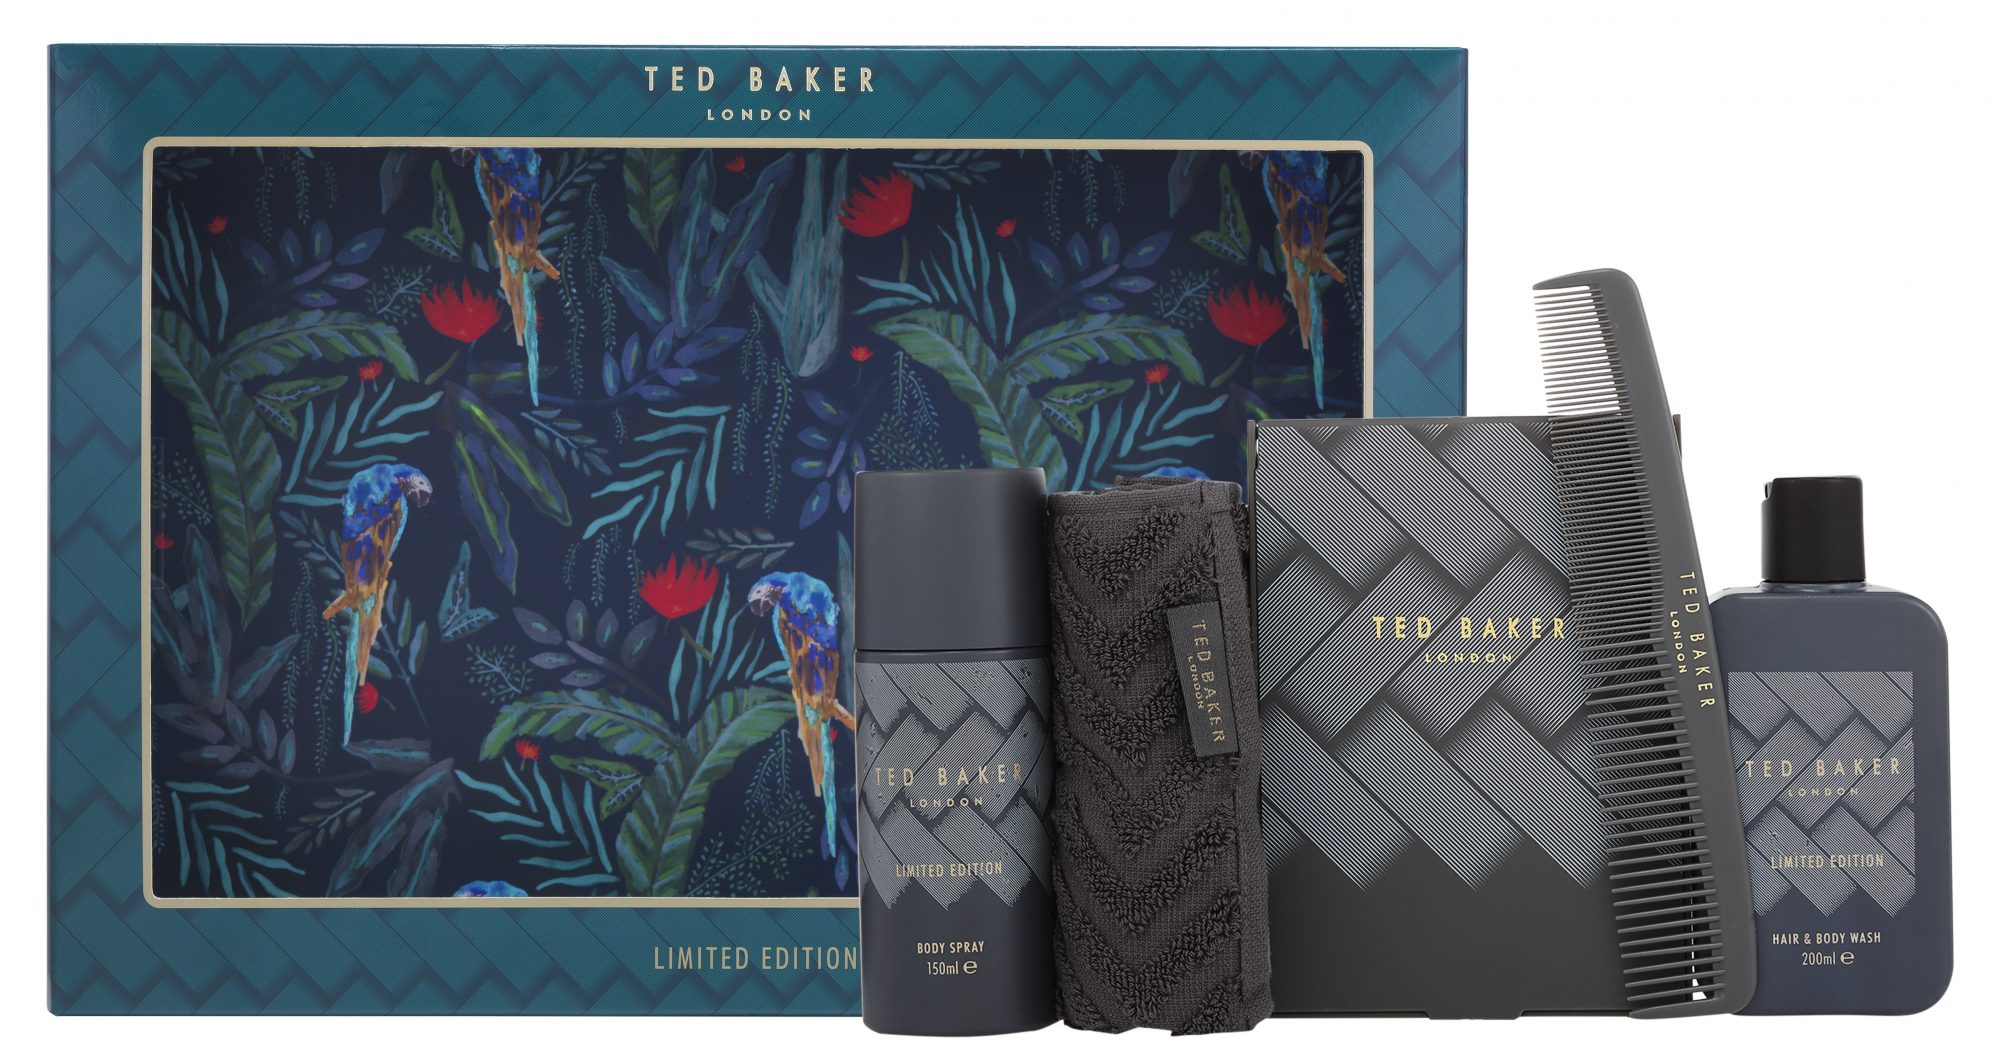 mirror-set-ted-baker-gift-giving-mfh